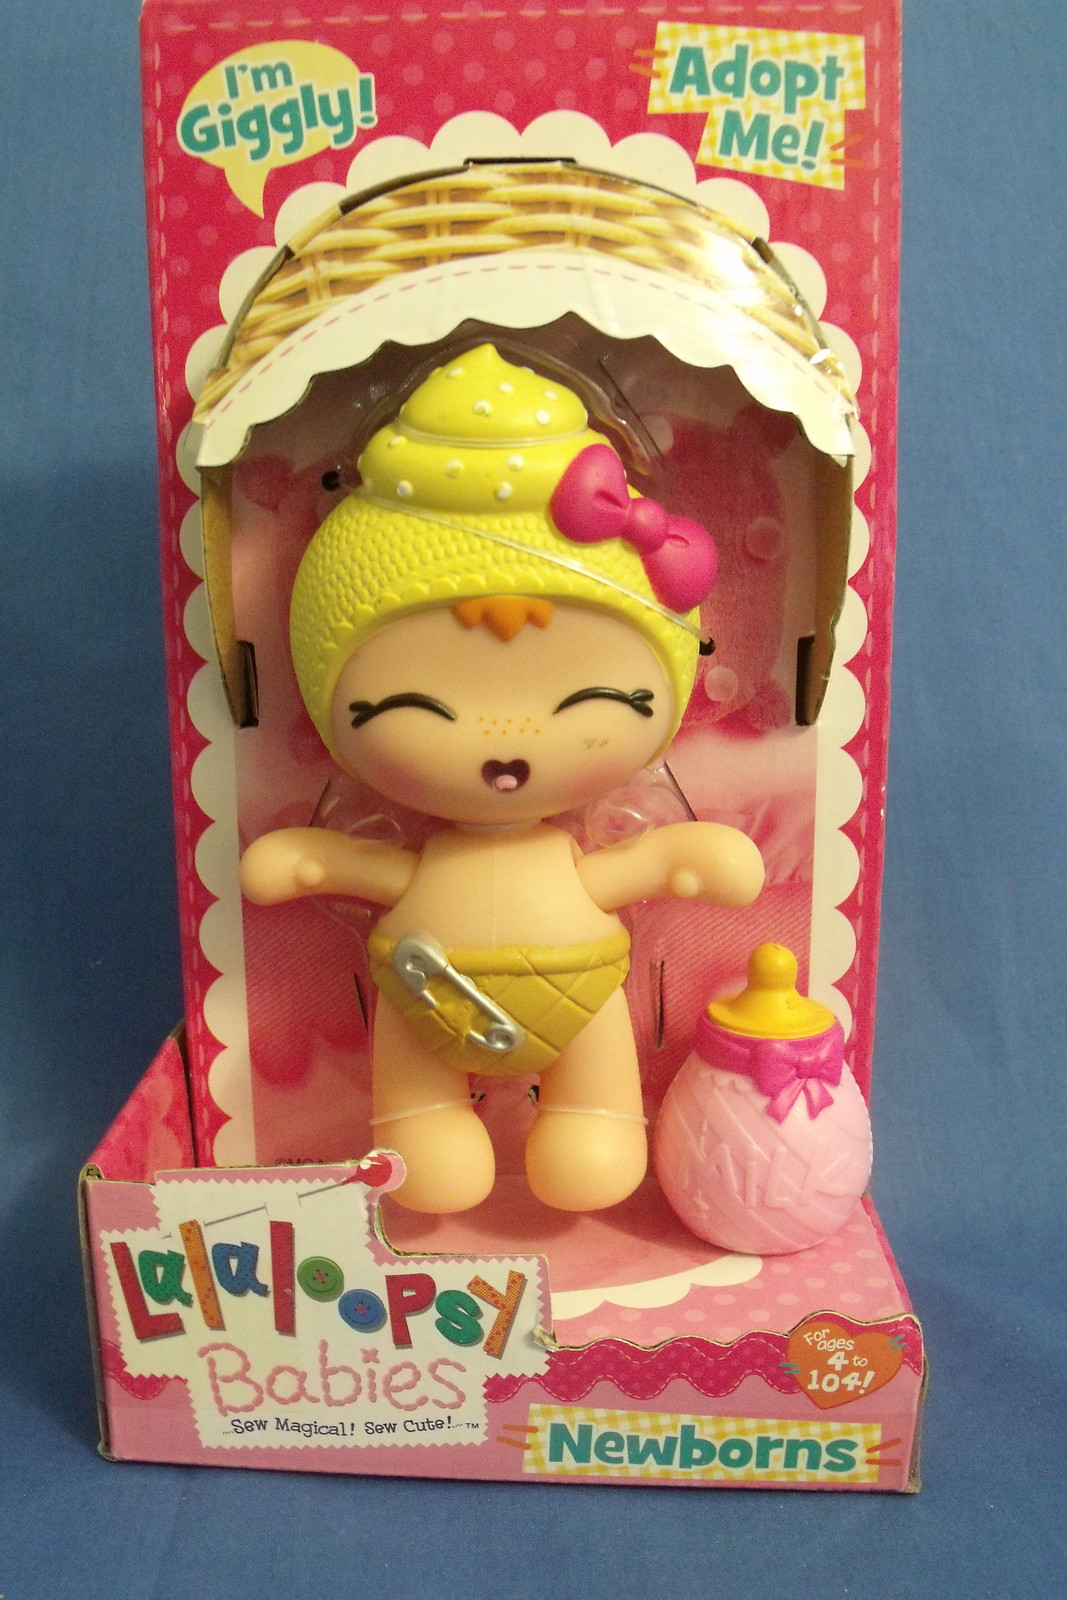 Toys Dolls New Lalaloopsy Babies Newborns Doll I'm Giggly 5 inches